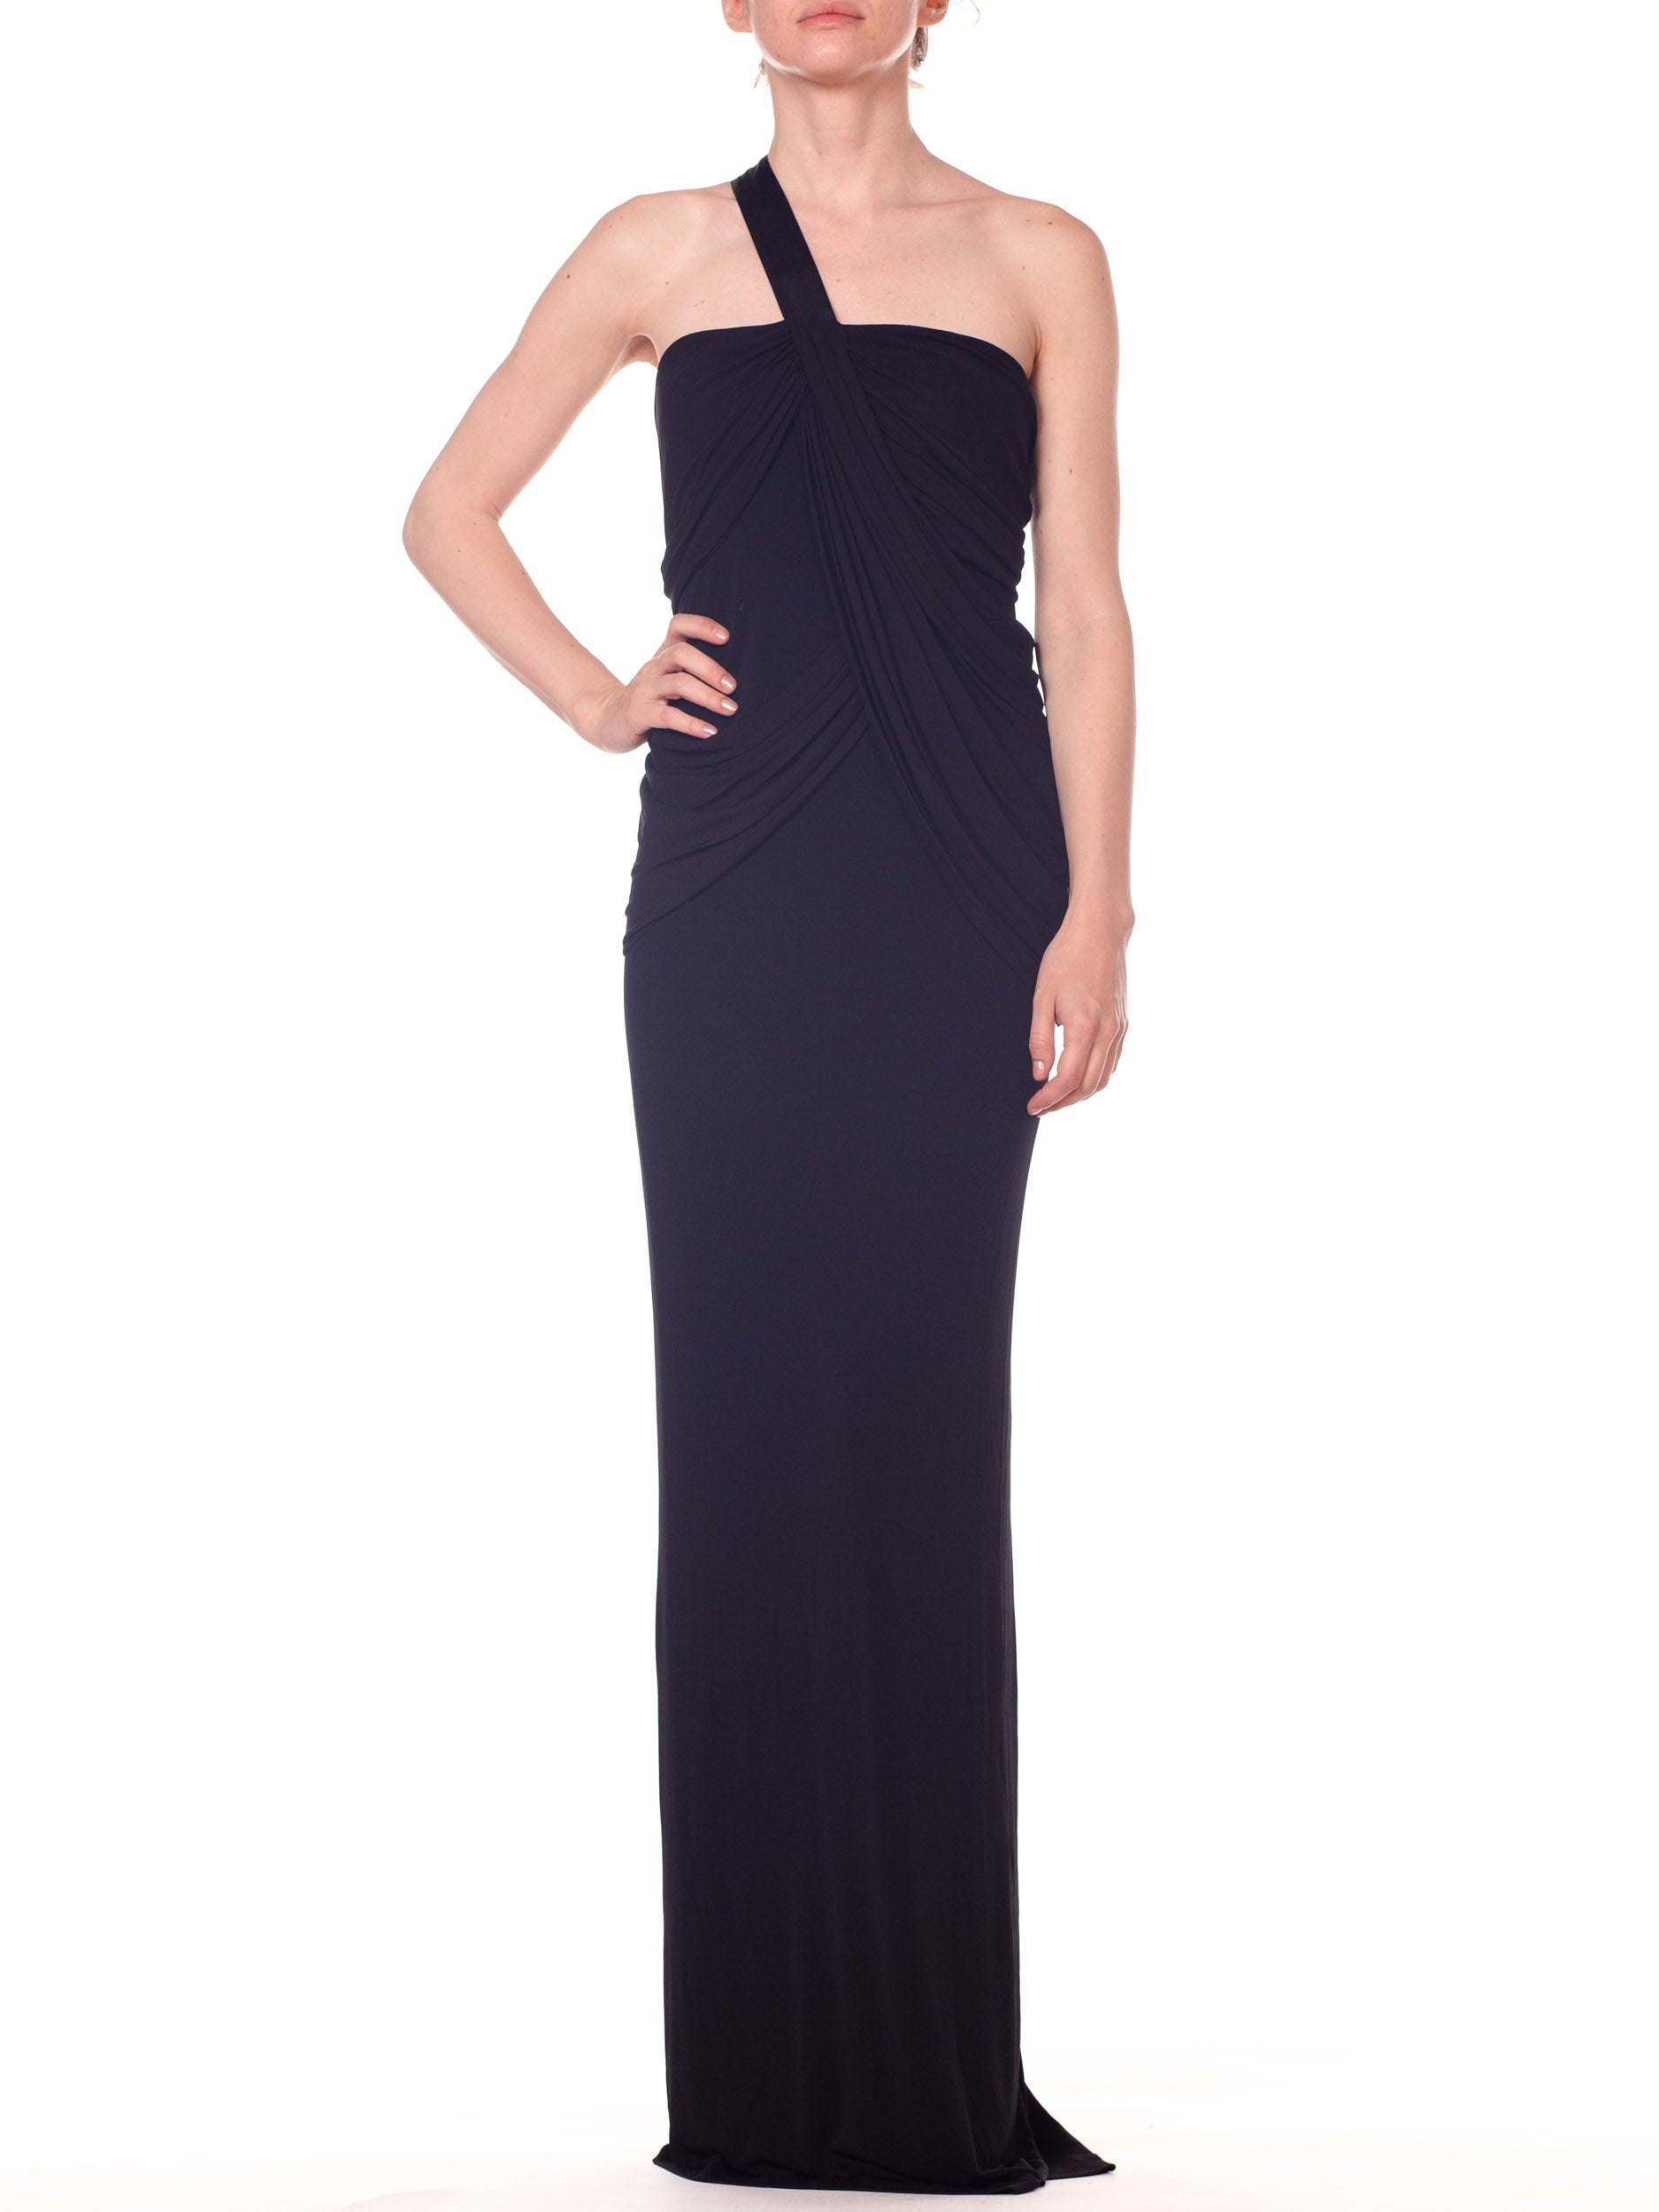 Slinky Jersey Knit Gown With Sheer Draped Details